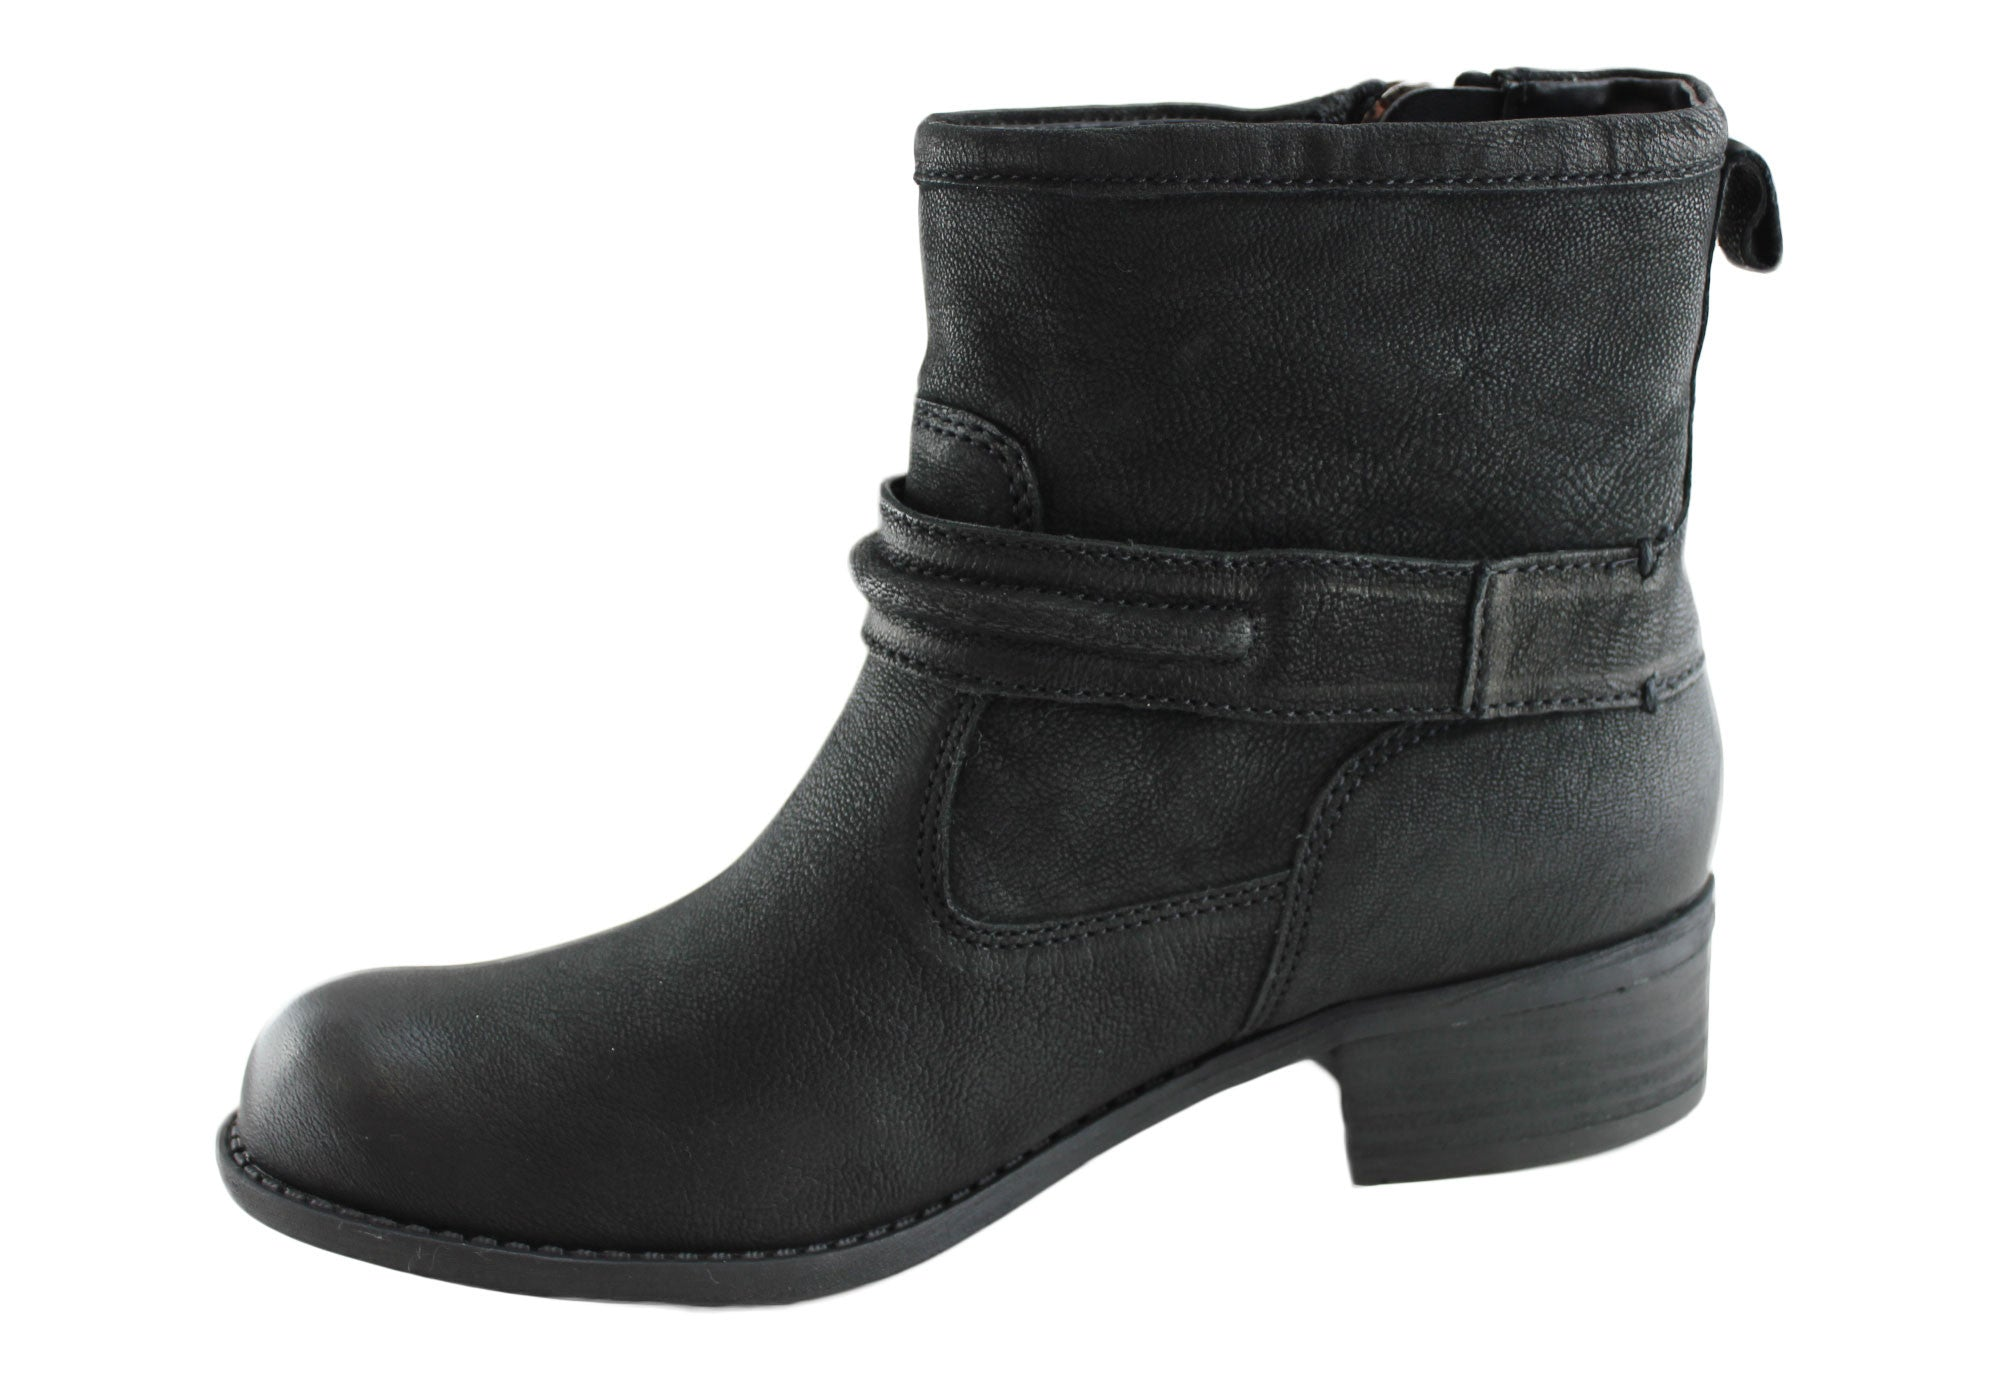 RMK Glastonbury Womens Leather Ankle Boots